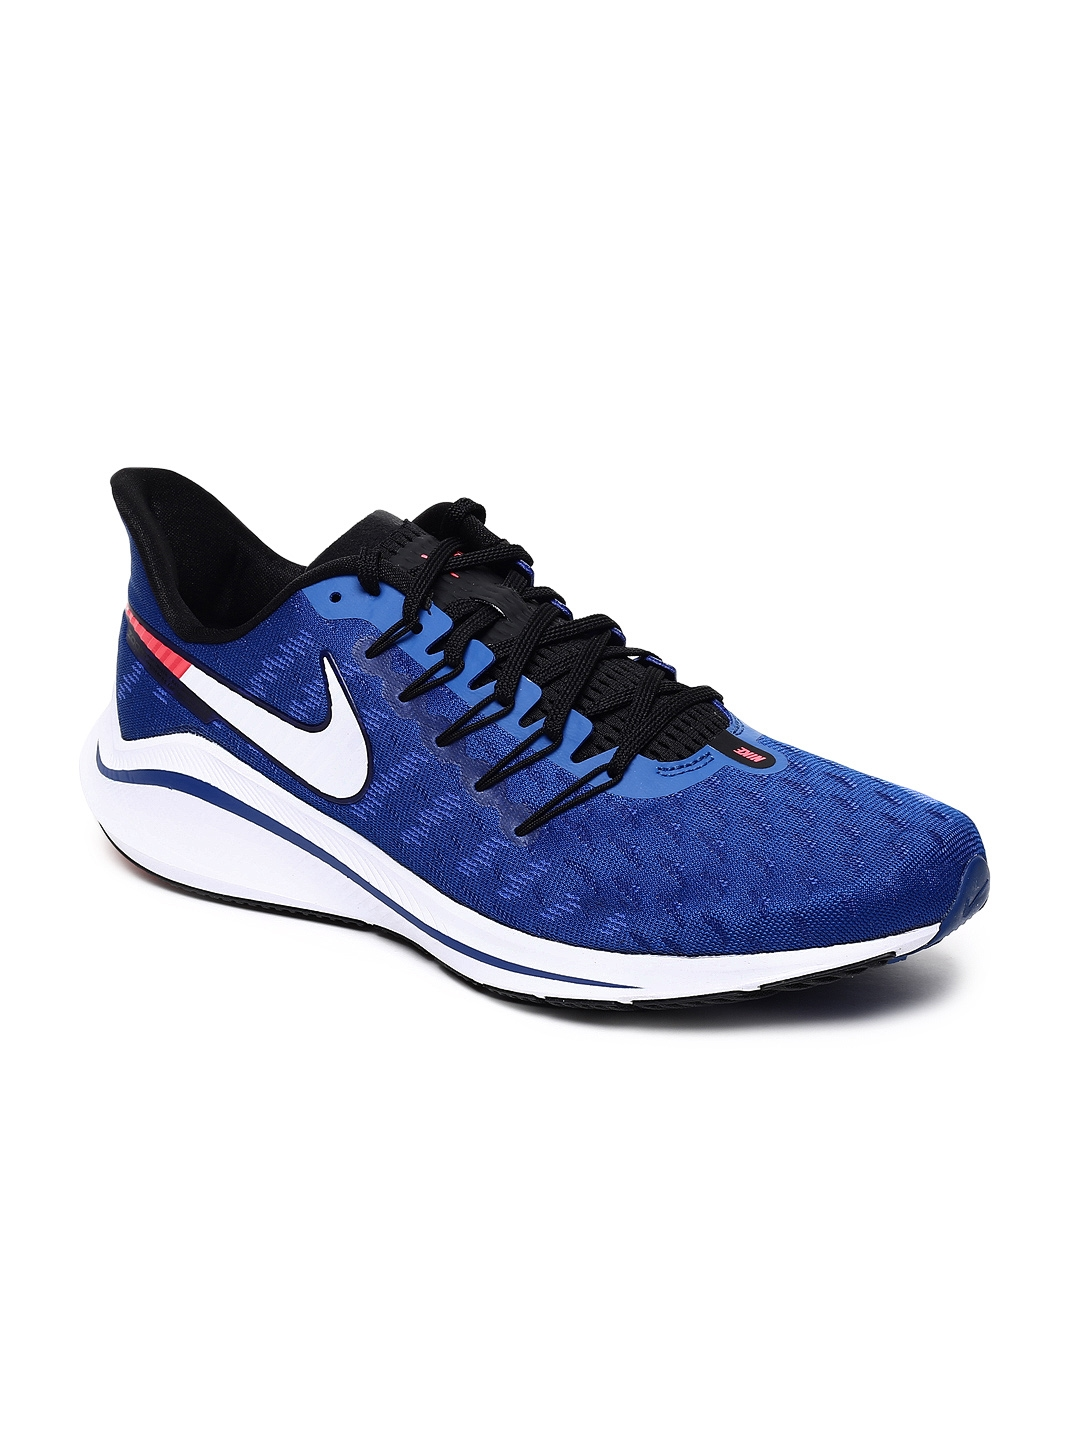 5a3035d0e9550 Buy Nike Men Blue Air Zoom Vomero 14 Running Shoes - Sports Shoes ...